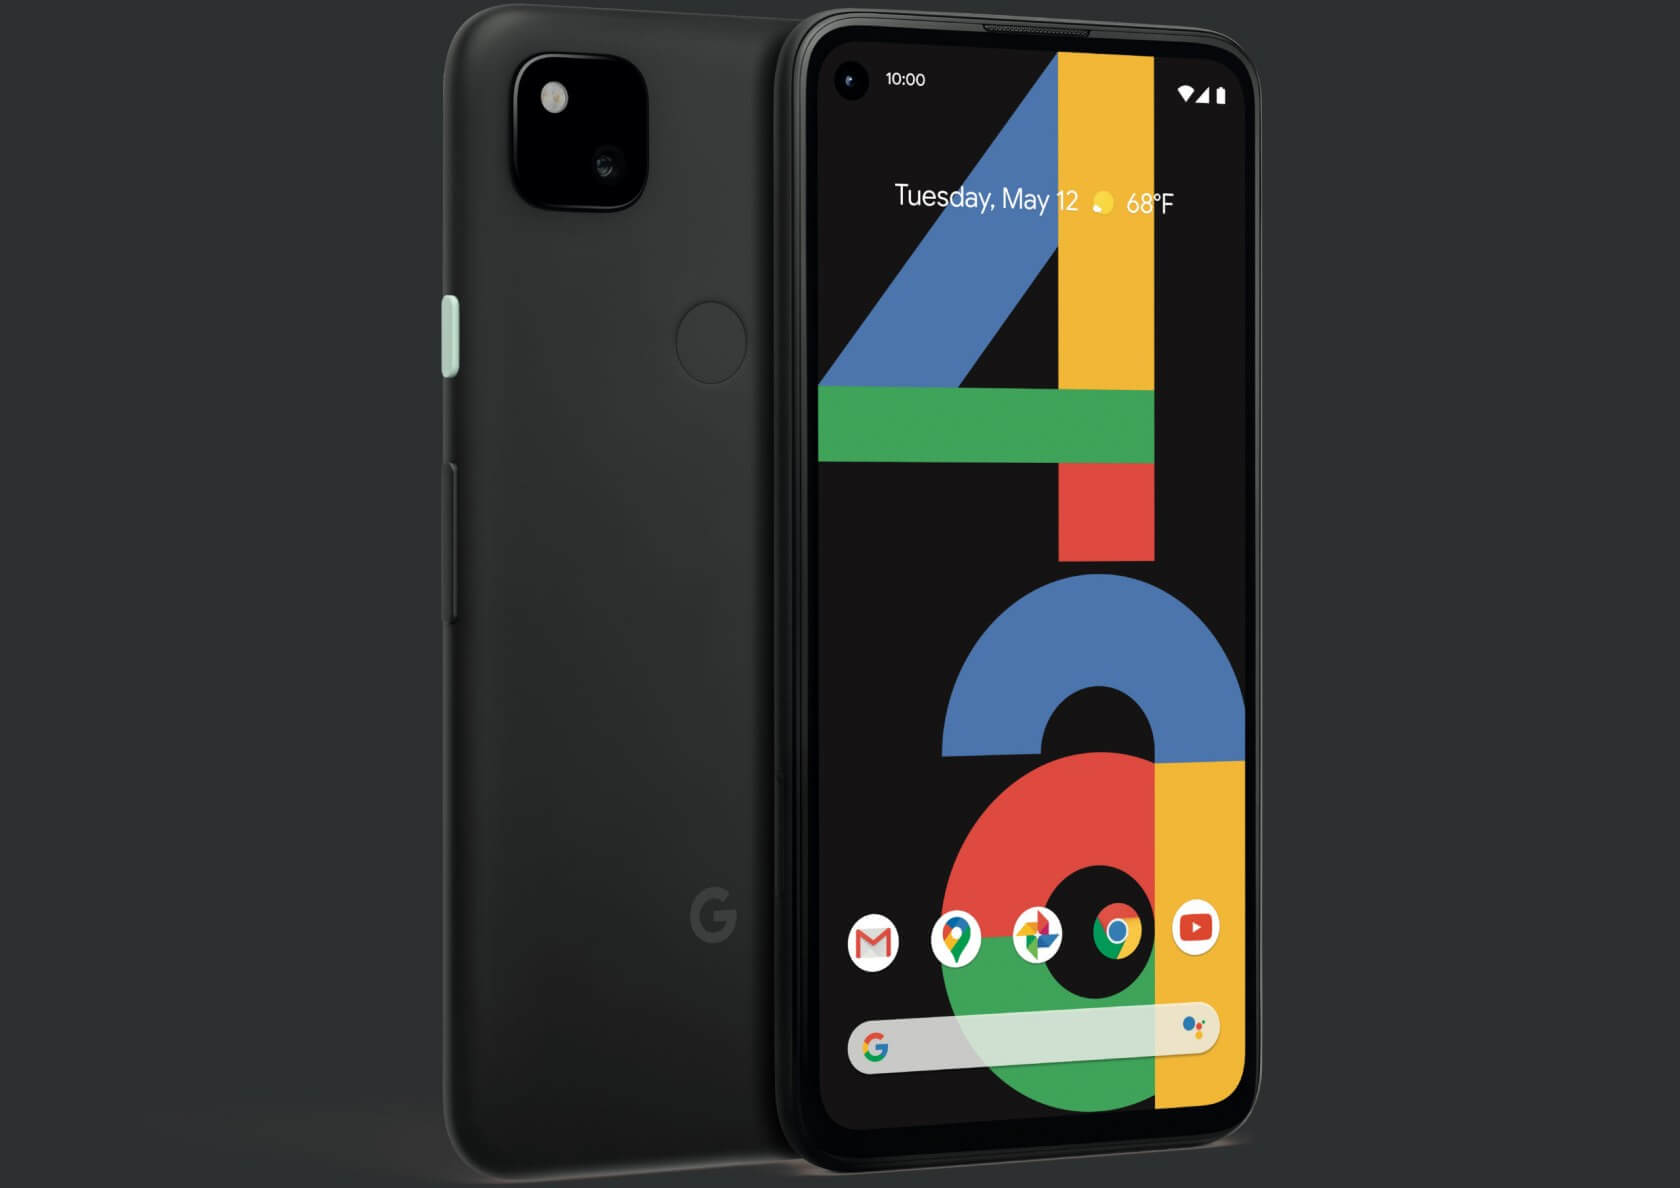 Google Pixel 4a starts at $349, Pixel 4a 5G and Pixel 5 are coming later this year